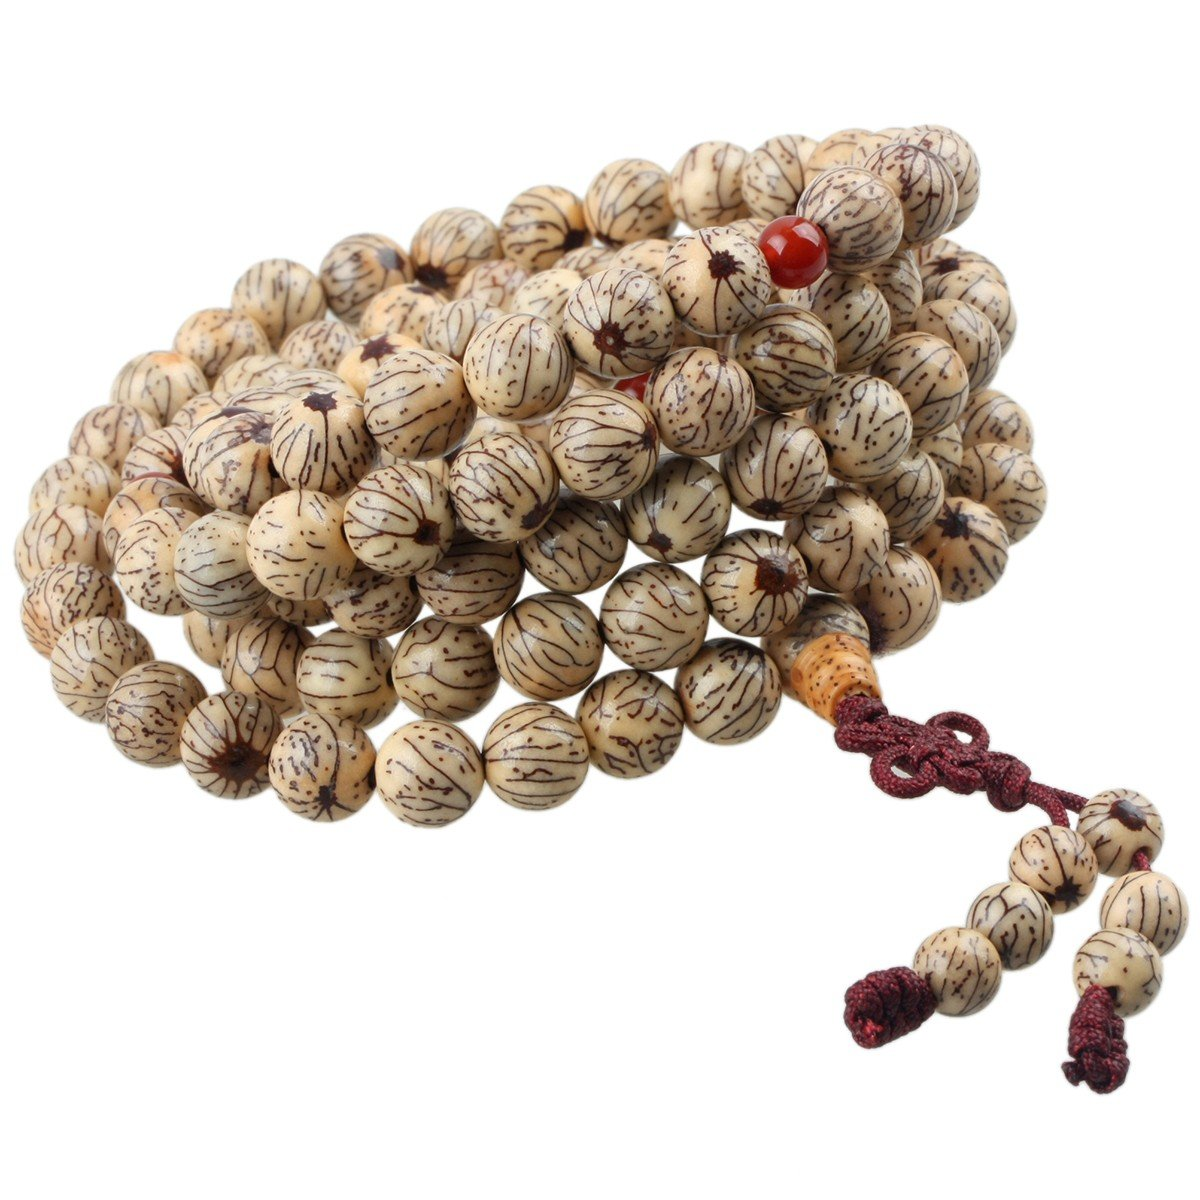 rockcloud 108 Buddhist Prayer Beads Natural Wood Tibetan Mala Necklace 7 Chakra Healig Stones Meditation Bracelet